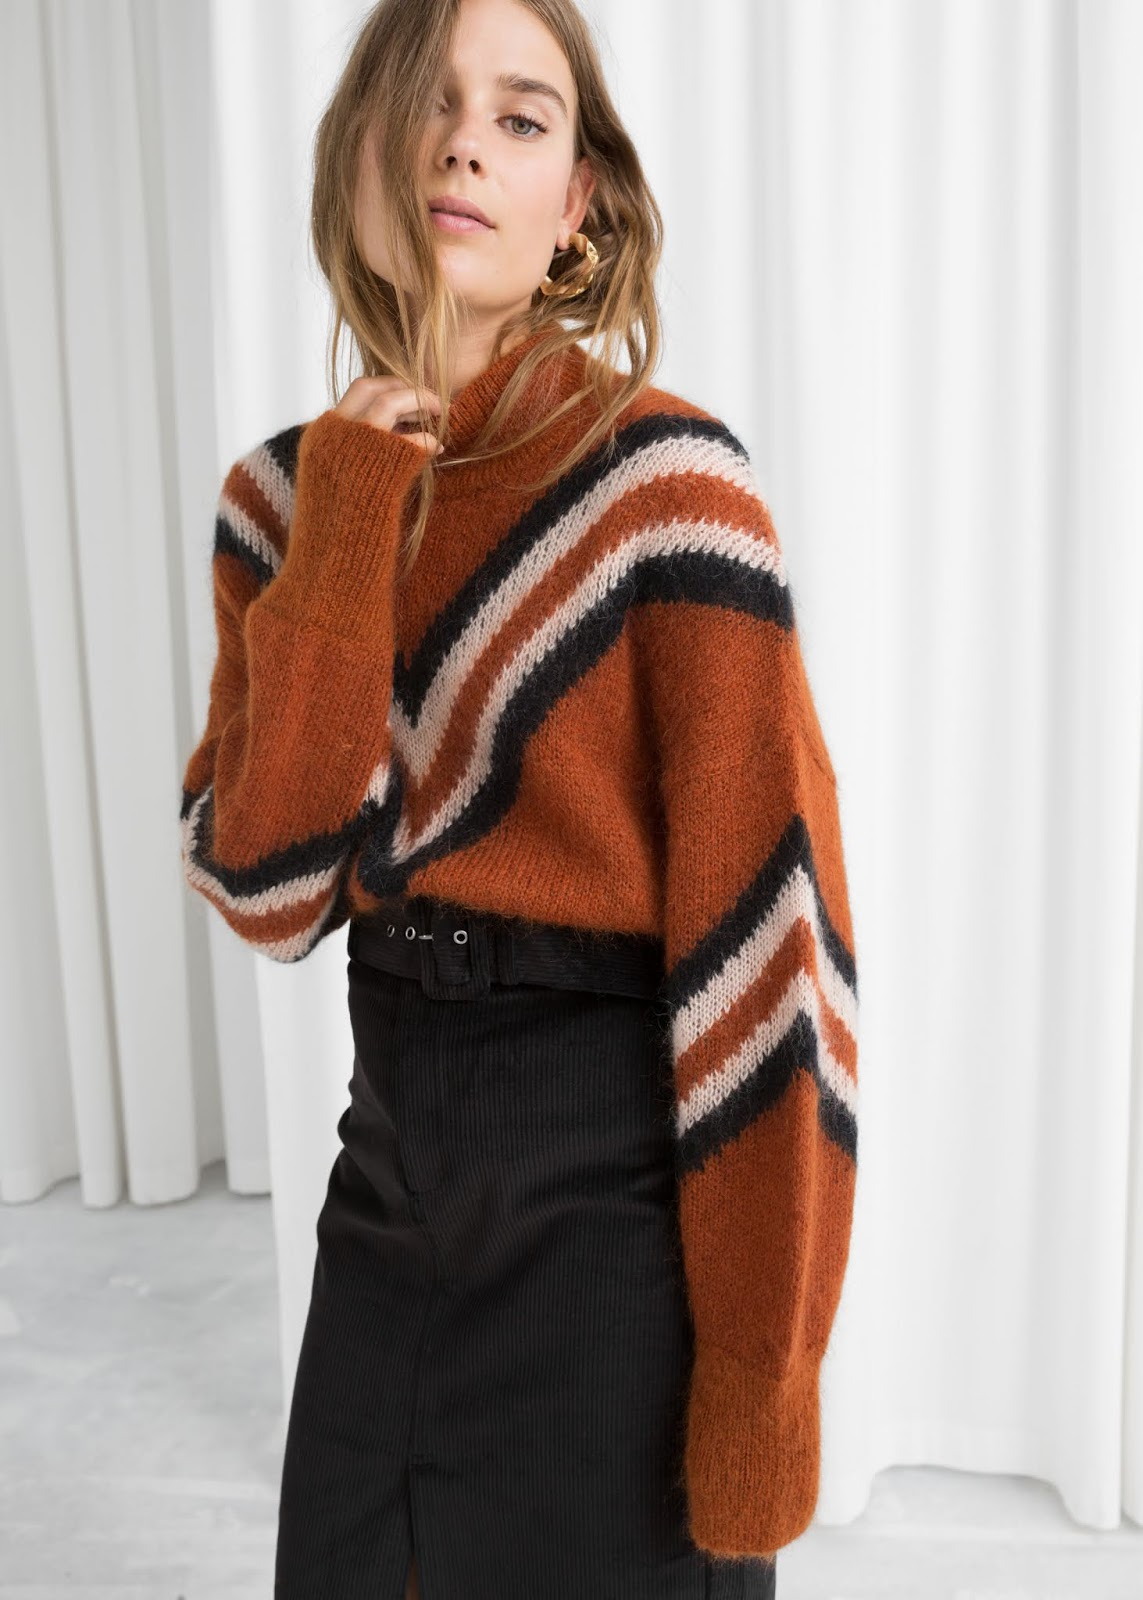 25 of the Best Sweaters for Fall